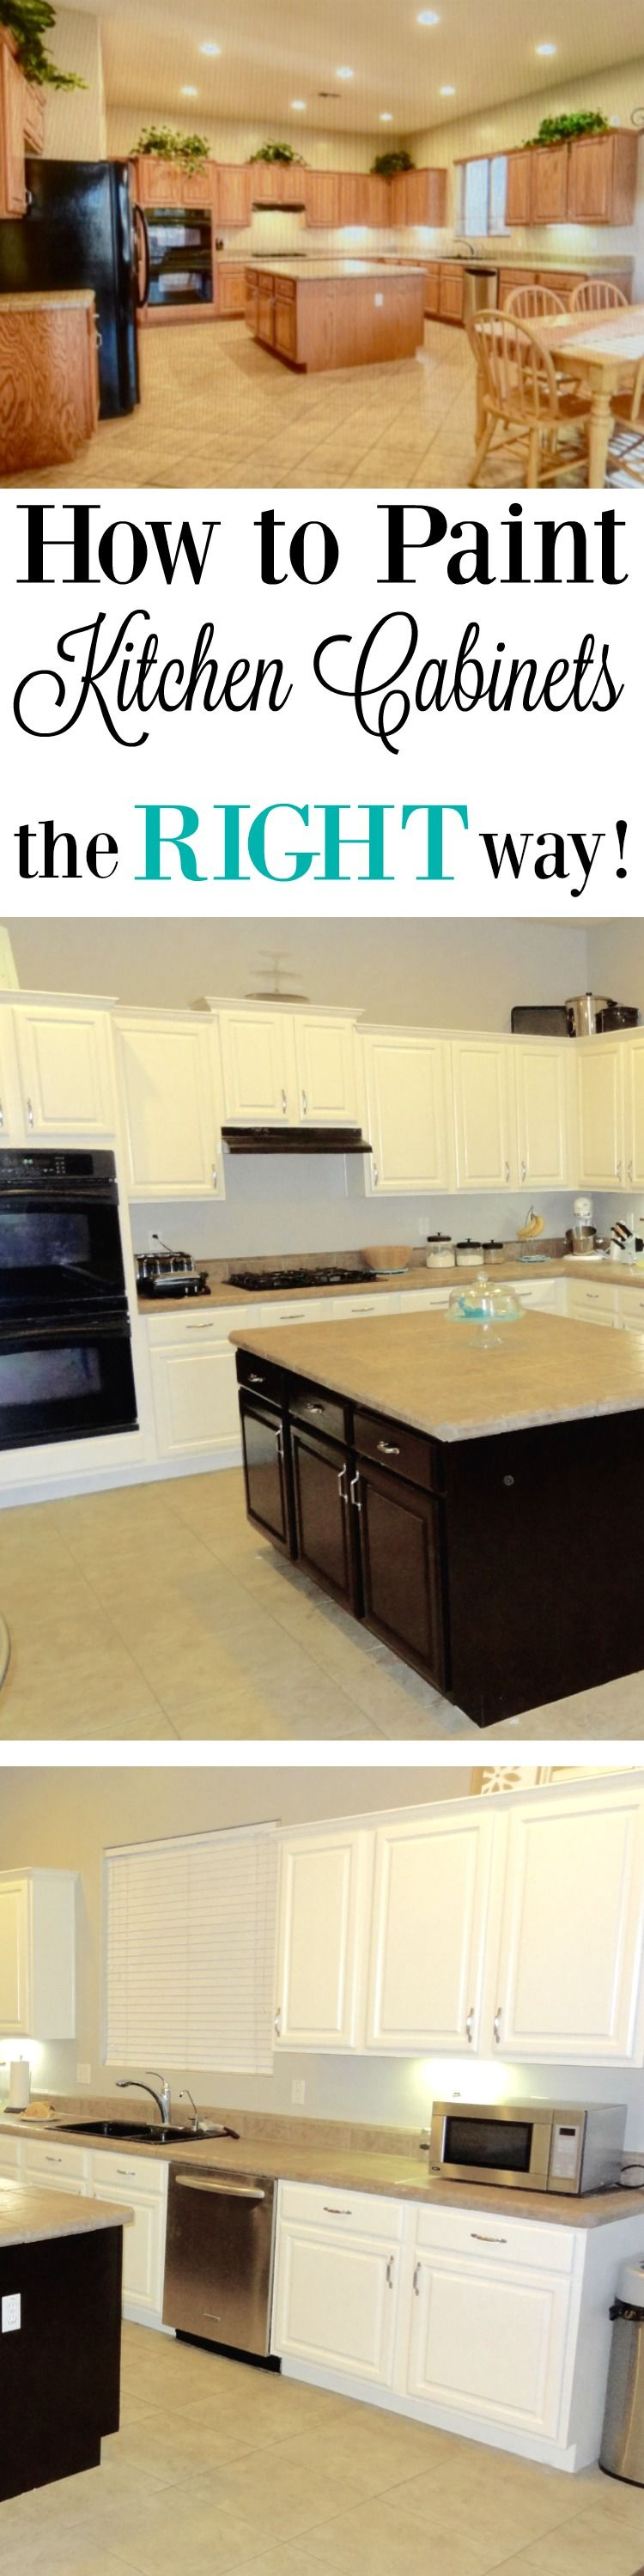 How To Paint Kitchen Cabinets Painting Kitchen Cabinets Painting Kitchen Cabinets White Kitchen Paint